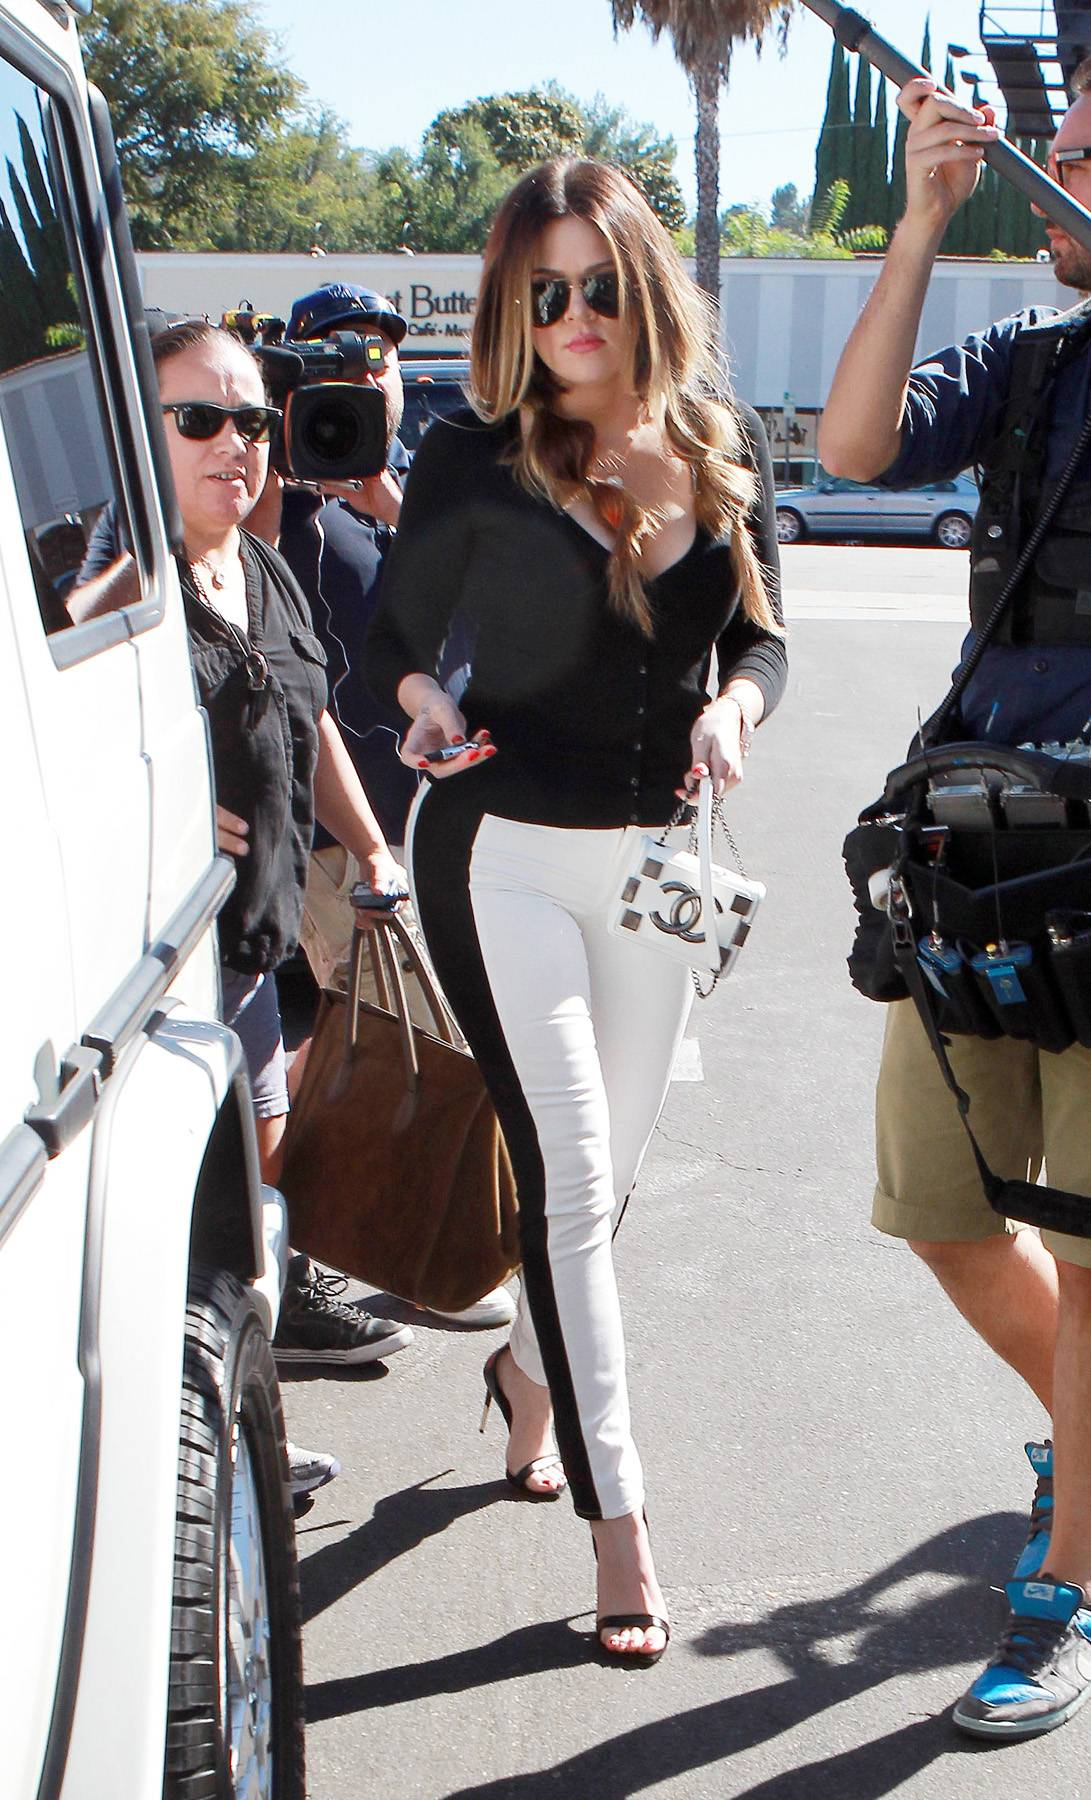 """Divorce Papers - After months of speculation, Kardashian filed for divorce in December. In the legal docs Kardashian cites """"irreconcilable differences.""""  She is also asking the judge to take Odom out of her name, so she is once again simply Khloe Kardashian.(Photo: WENN.com)"""